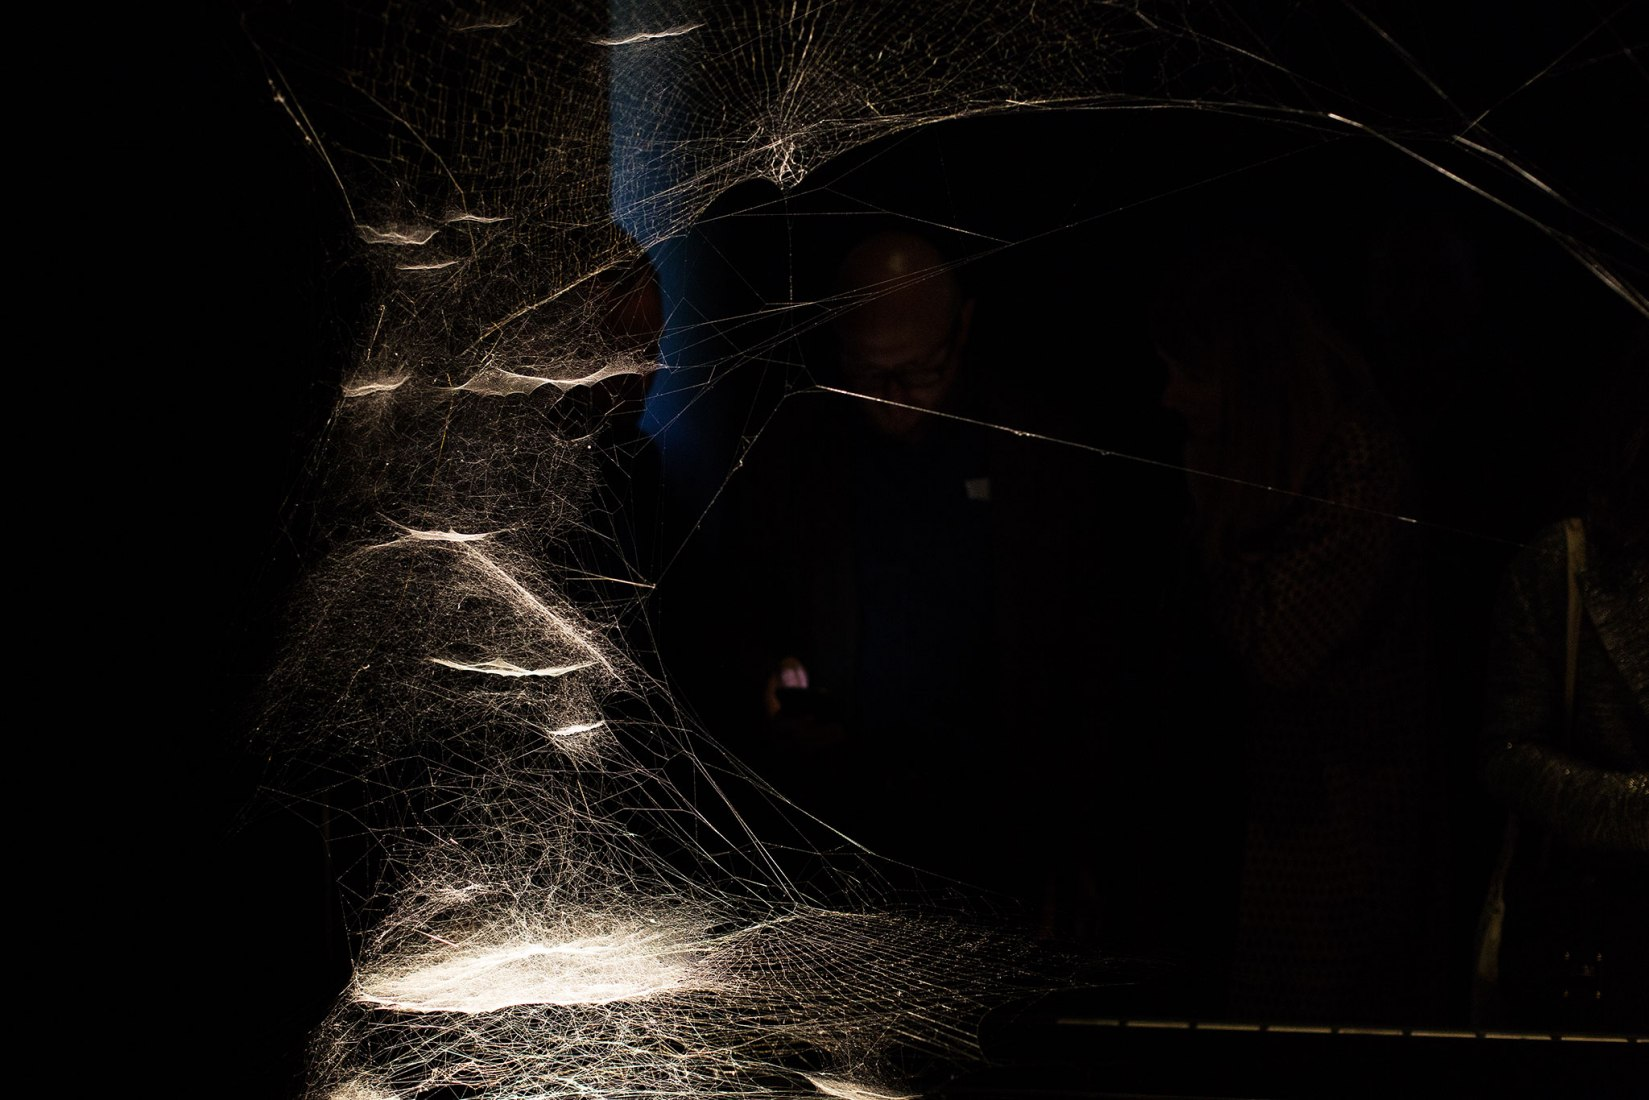 Spider/Web Pavilion 7: Oracle Readings, Weaving Arachnomancy, Synanthropic Futures: At-ten(t)sion to invertebrate rights!, 2019, by Tomás Saraceno. Photograph by Francesco Galli. Courtesy of La Biennale di Venezia.